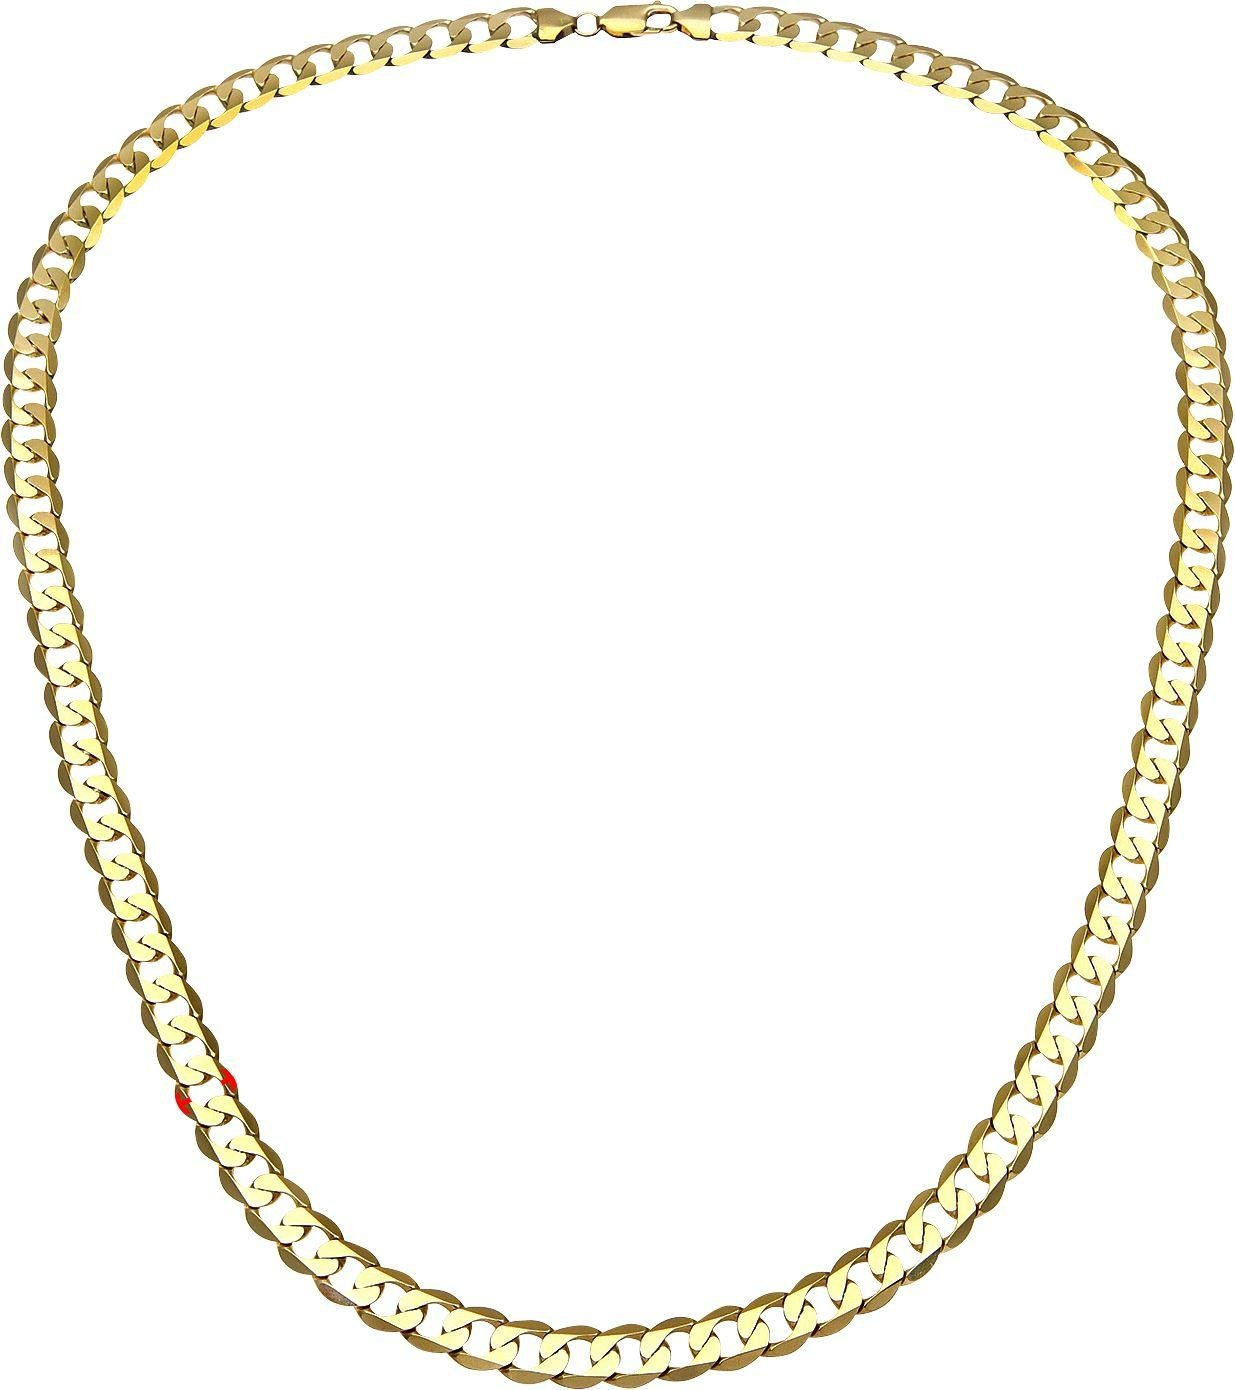 Image of 24 inch 9ct Yellow Gold Chain Necklace